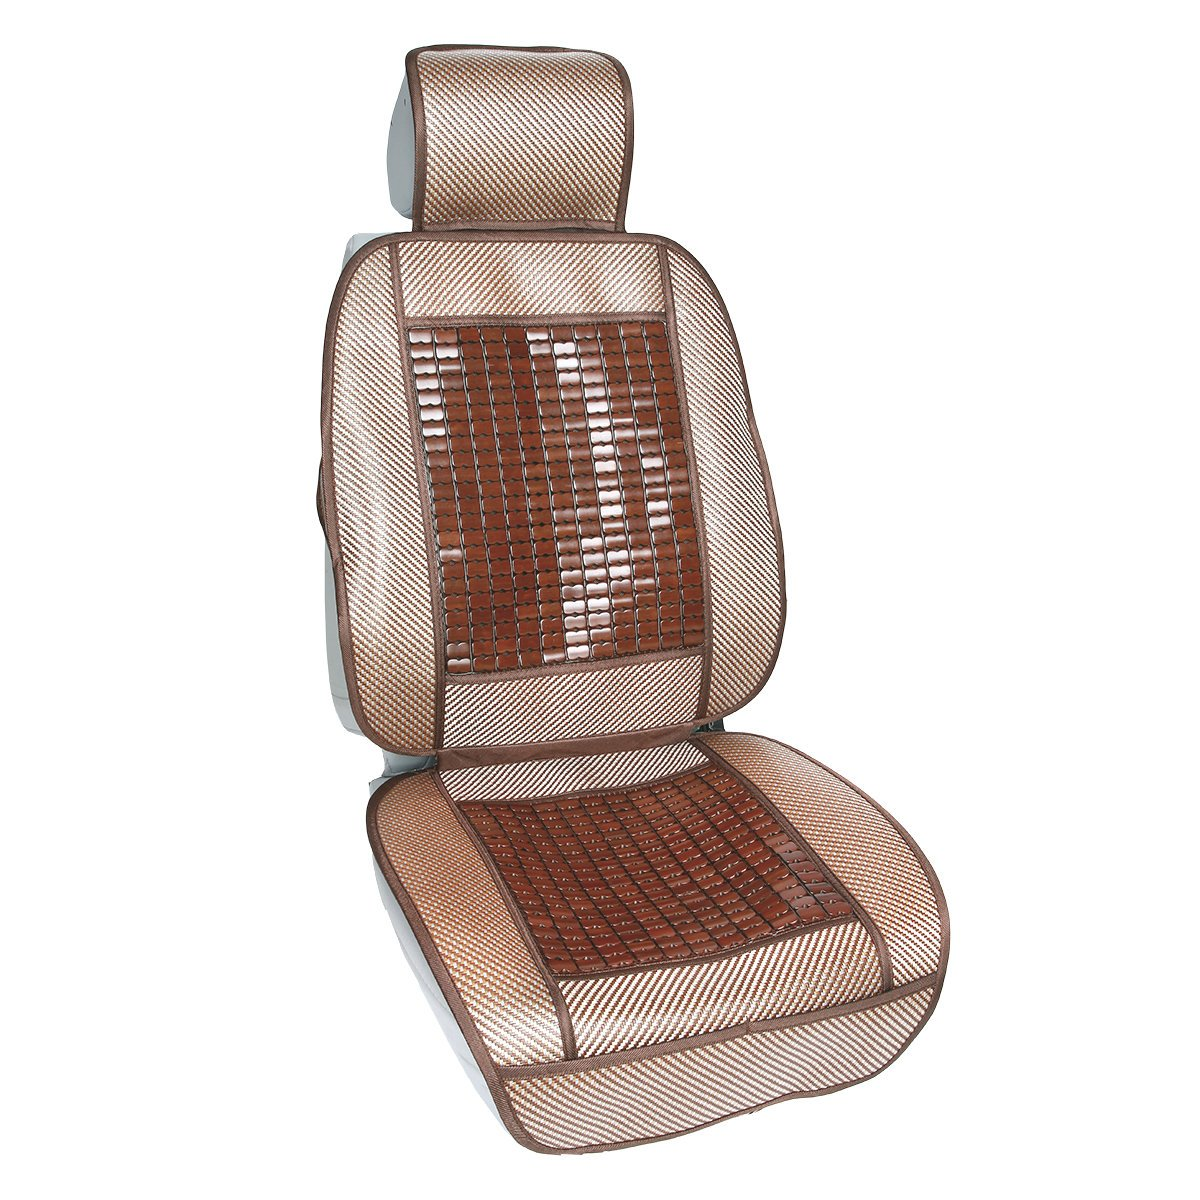 Qbedding Soothing Drive Cooling Series Universal Fit Breathable Car Seat Cover (Mahjong Bing Si, One Piece)